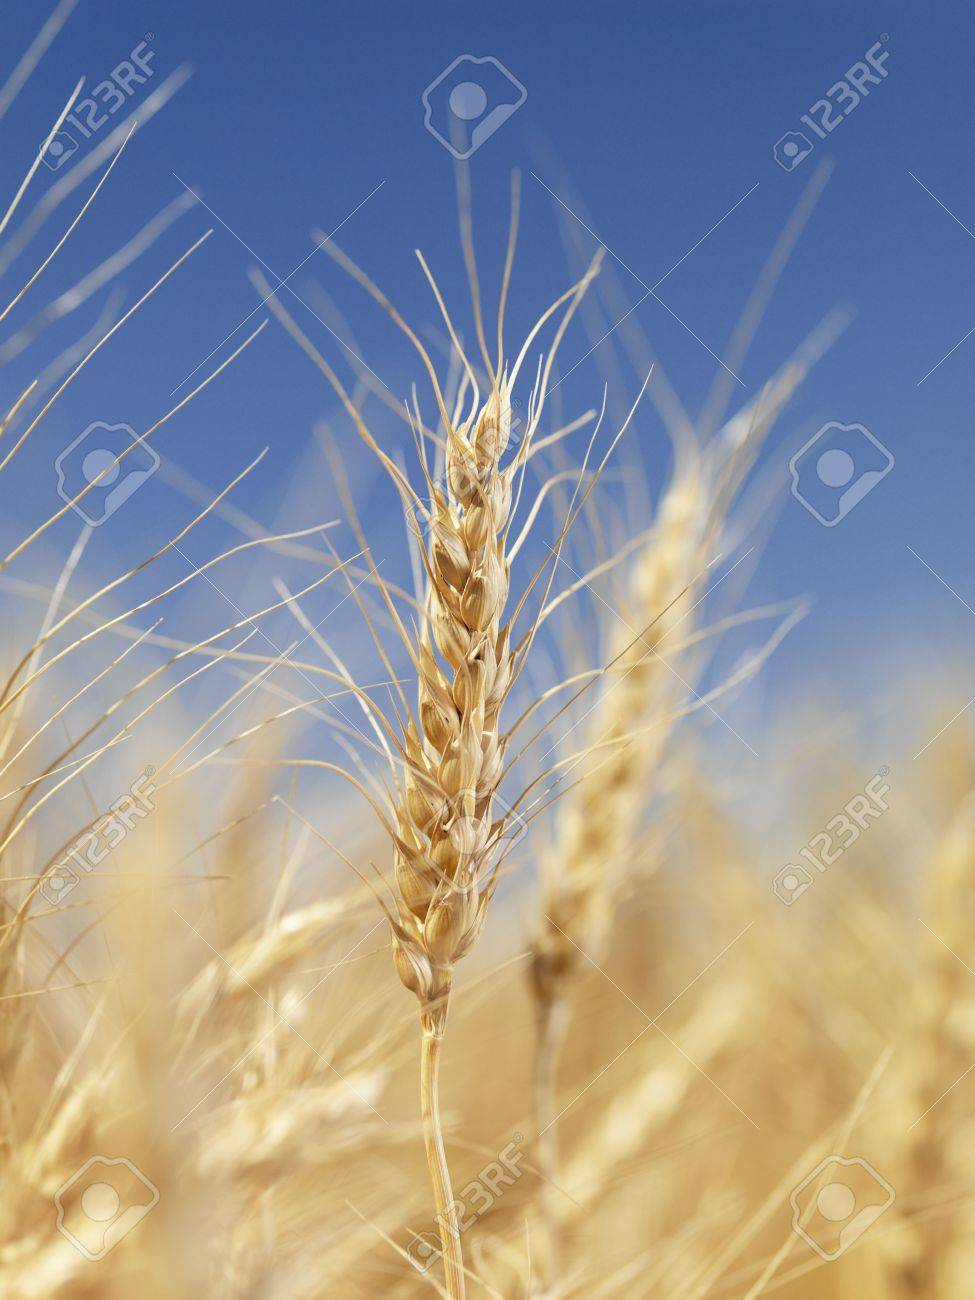 Close up view of wheat field ready for harvest. Stock Photo - 1832248